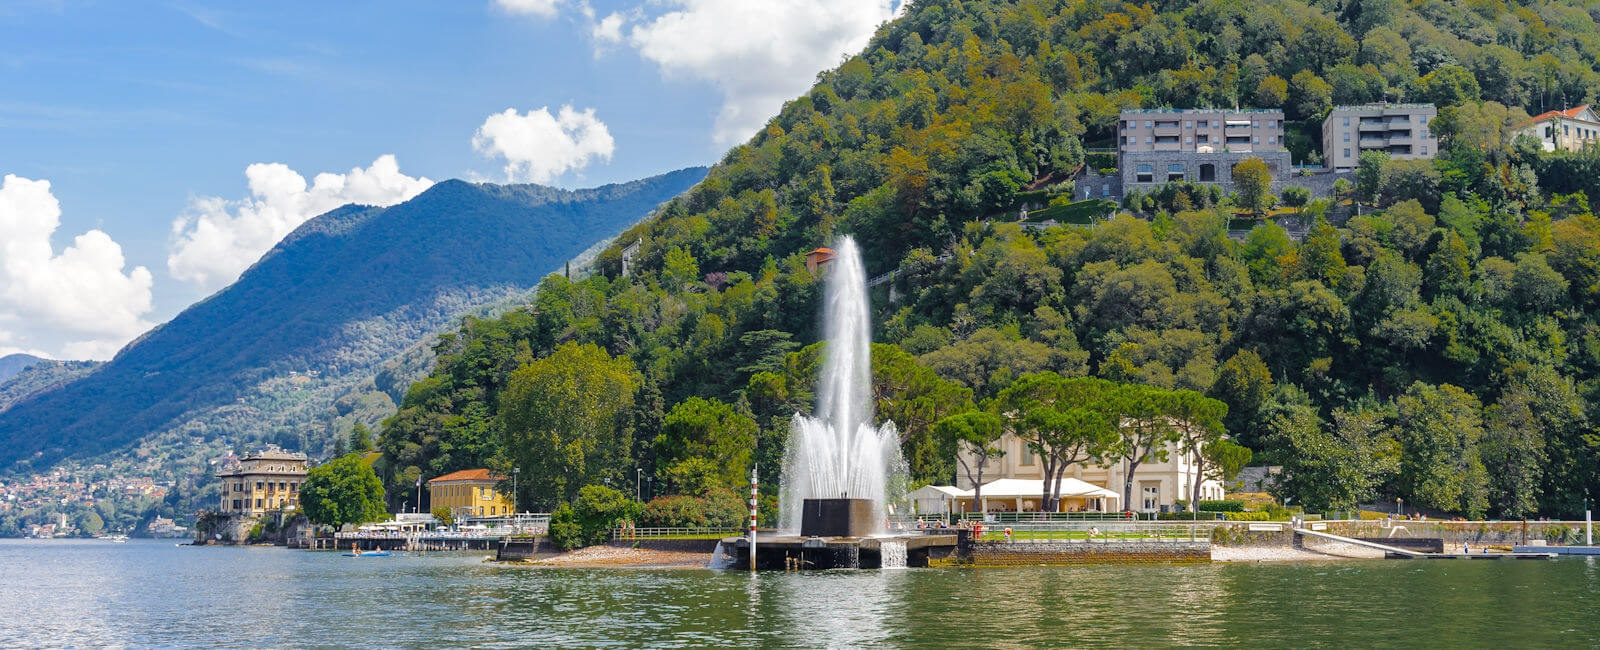 blevio fountain, lake como